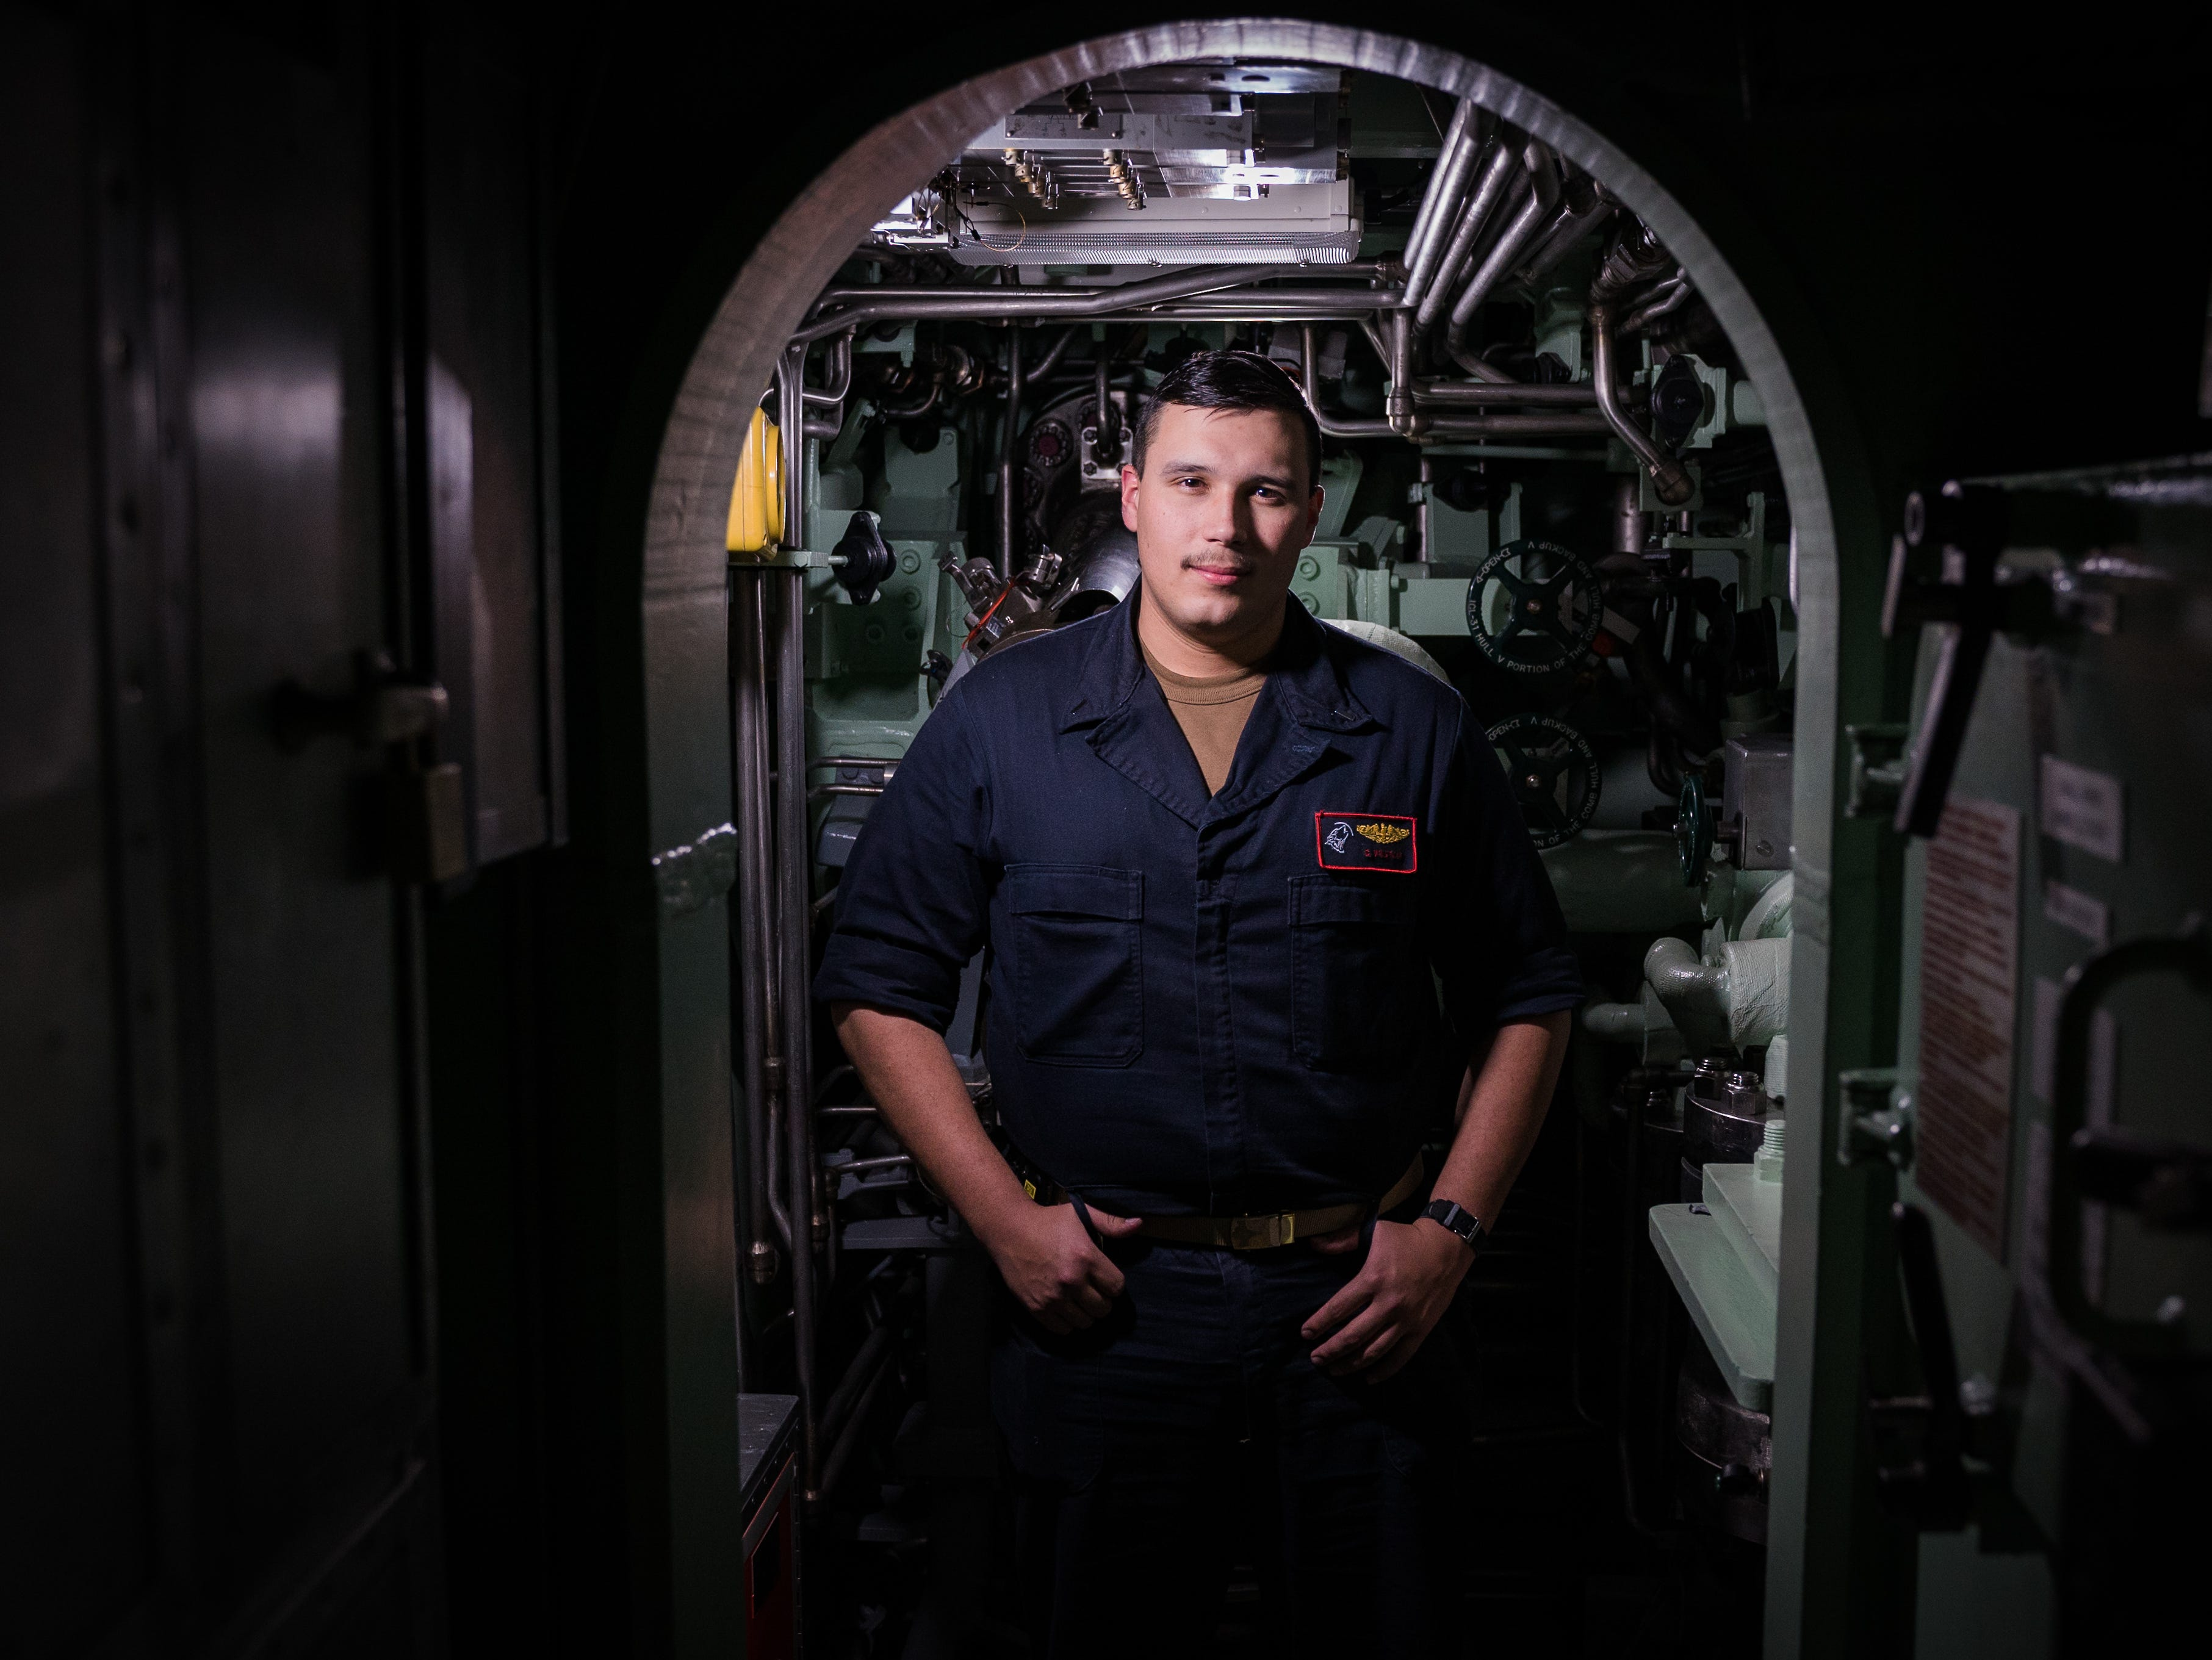 U.S. Navy Lt. j.g. Caleb Weston, a pre-commissioned Unit (PCU) South Dakota submariner, poses for a photo during an underway somewhere in the Atlantic Ocean Nov 27.